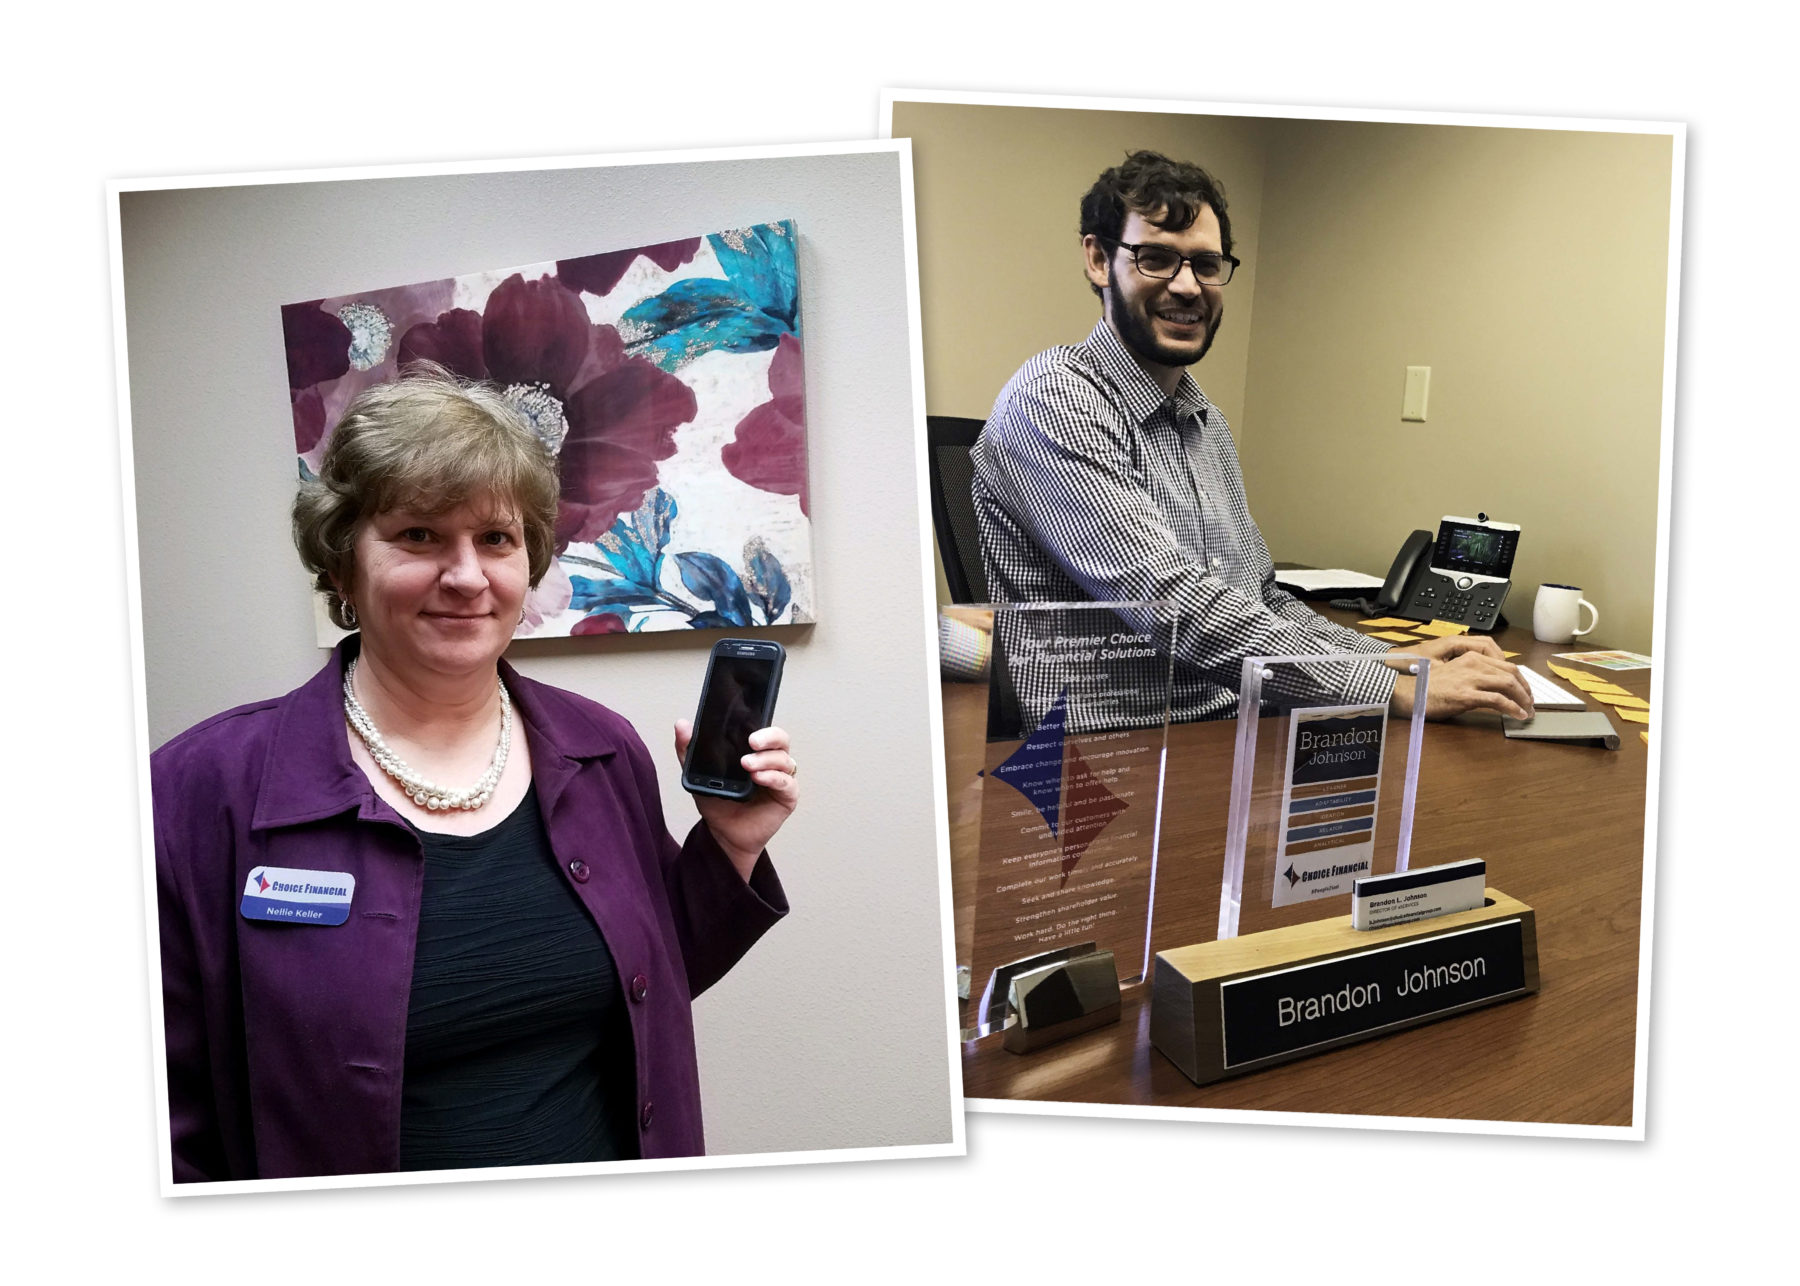 Two photos: (left) Nellie Keller holding a cell phone. (Right) Brandon Johnson sitting at his desk.